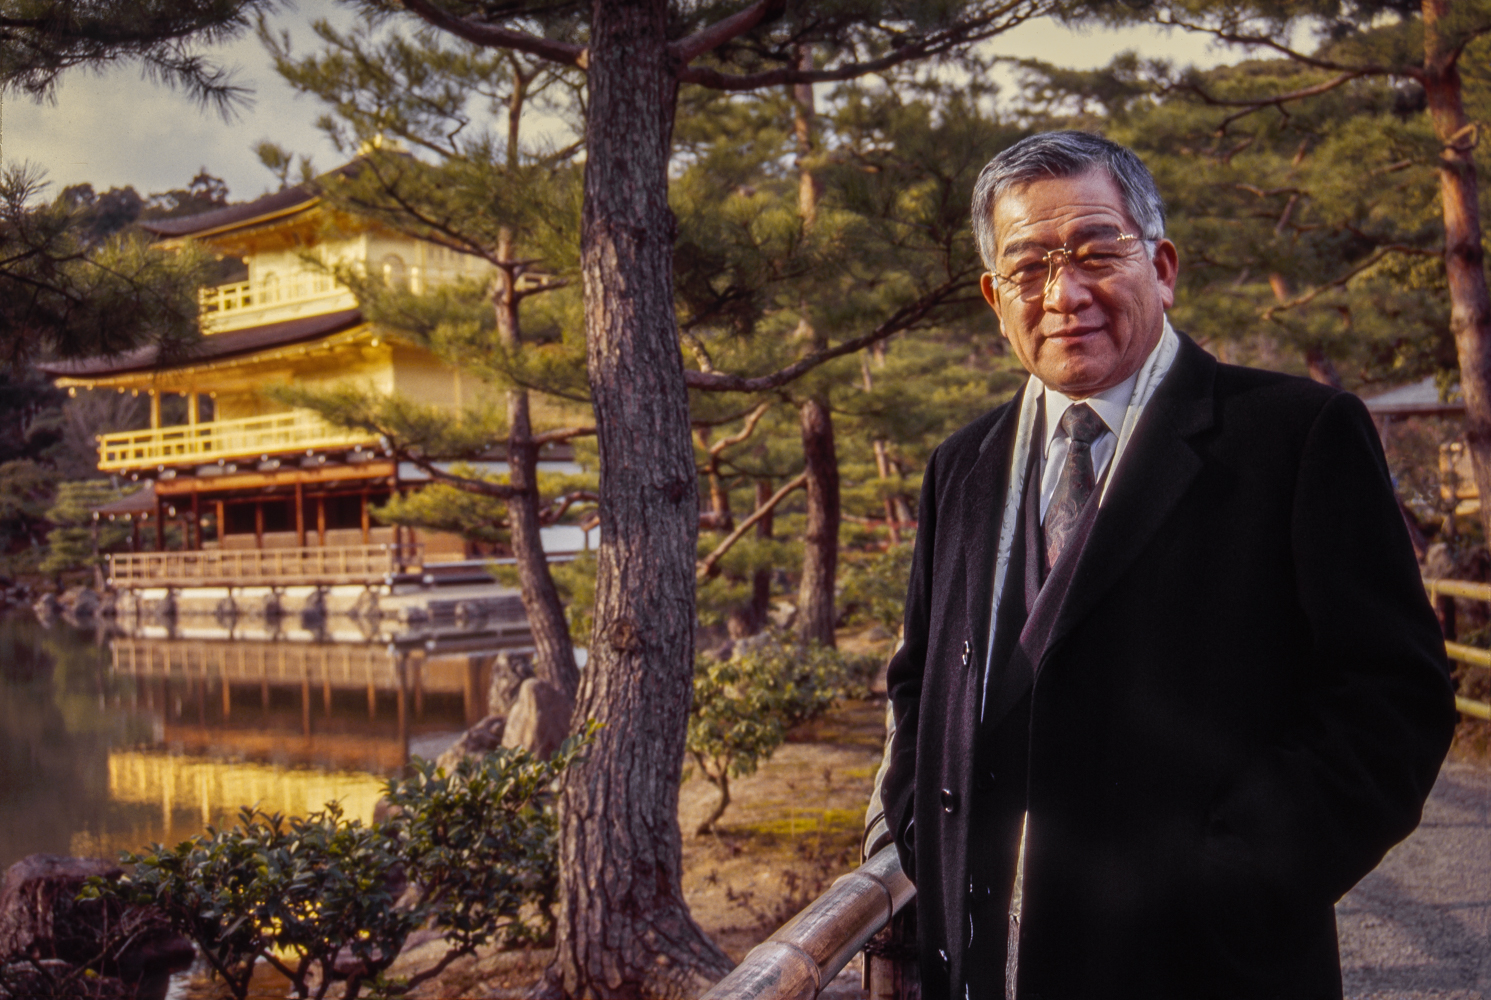 Semiconductor Industry Executive at Kinkakuji in Kyoto, JapanThis semiconductor industry executive based in Tokyo represents a Silicon Valley corporation.  He is seen here at Kinkakuji, a Zen temple in Kyoto and the home of shogun Ashikaga Yoshimitsu before his death in 1408.